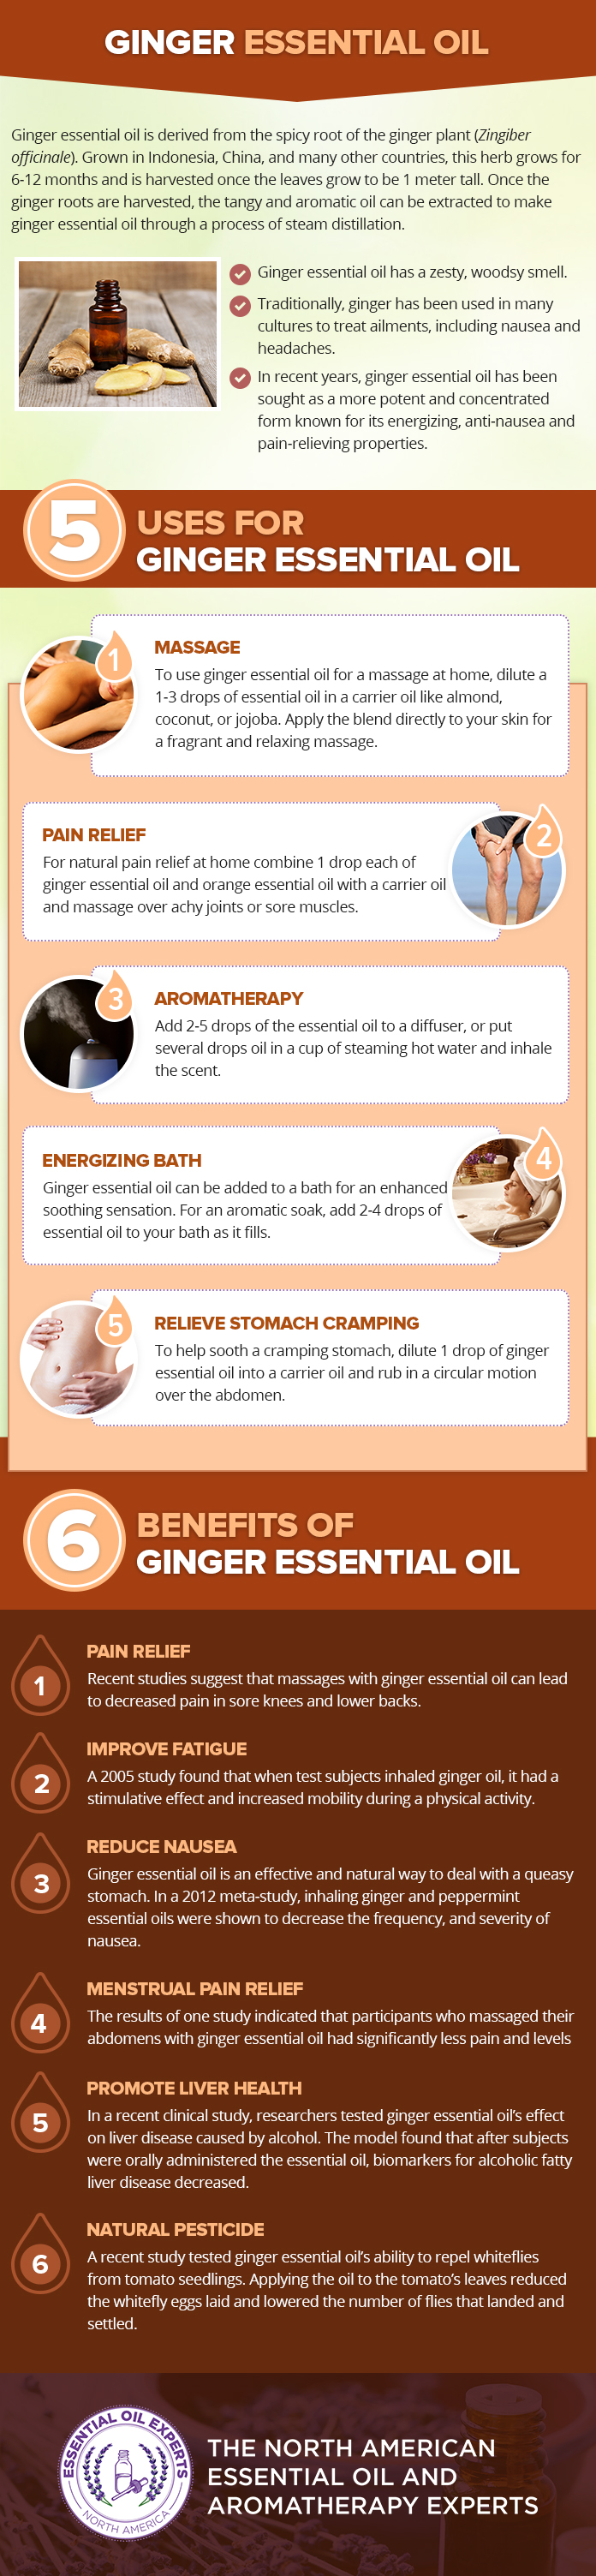 Here Is How To Use Ginger Essential Oil For Your Health And Beyond Infographic